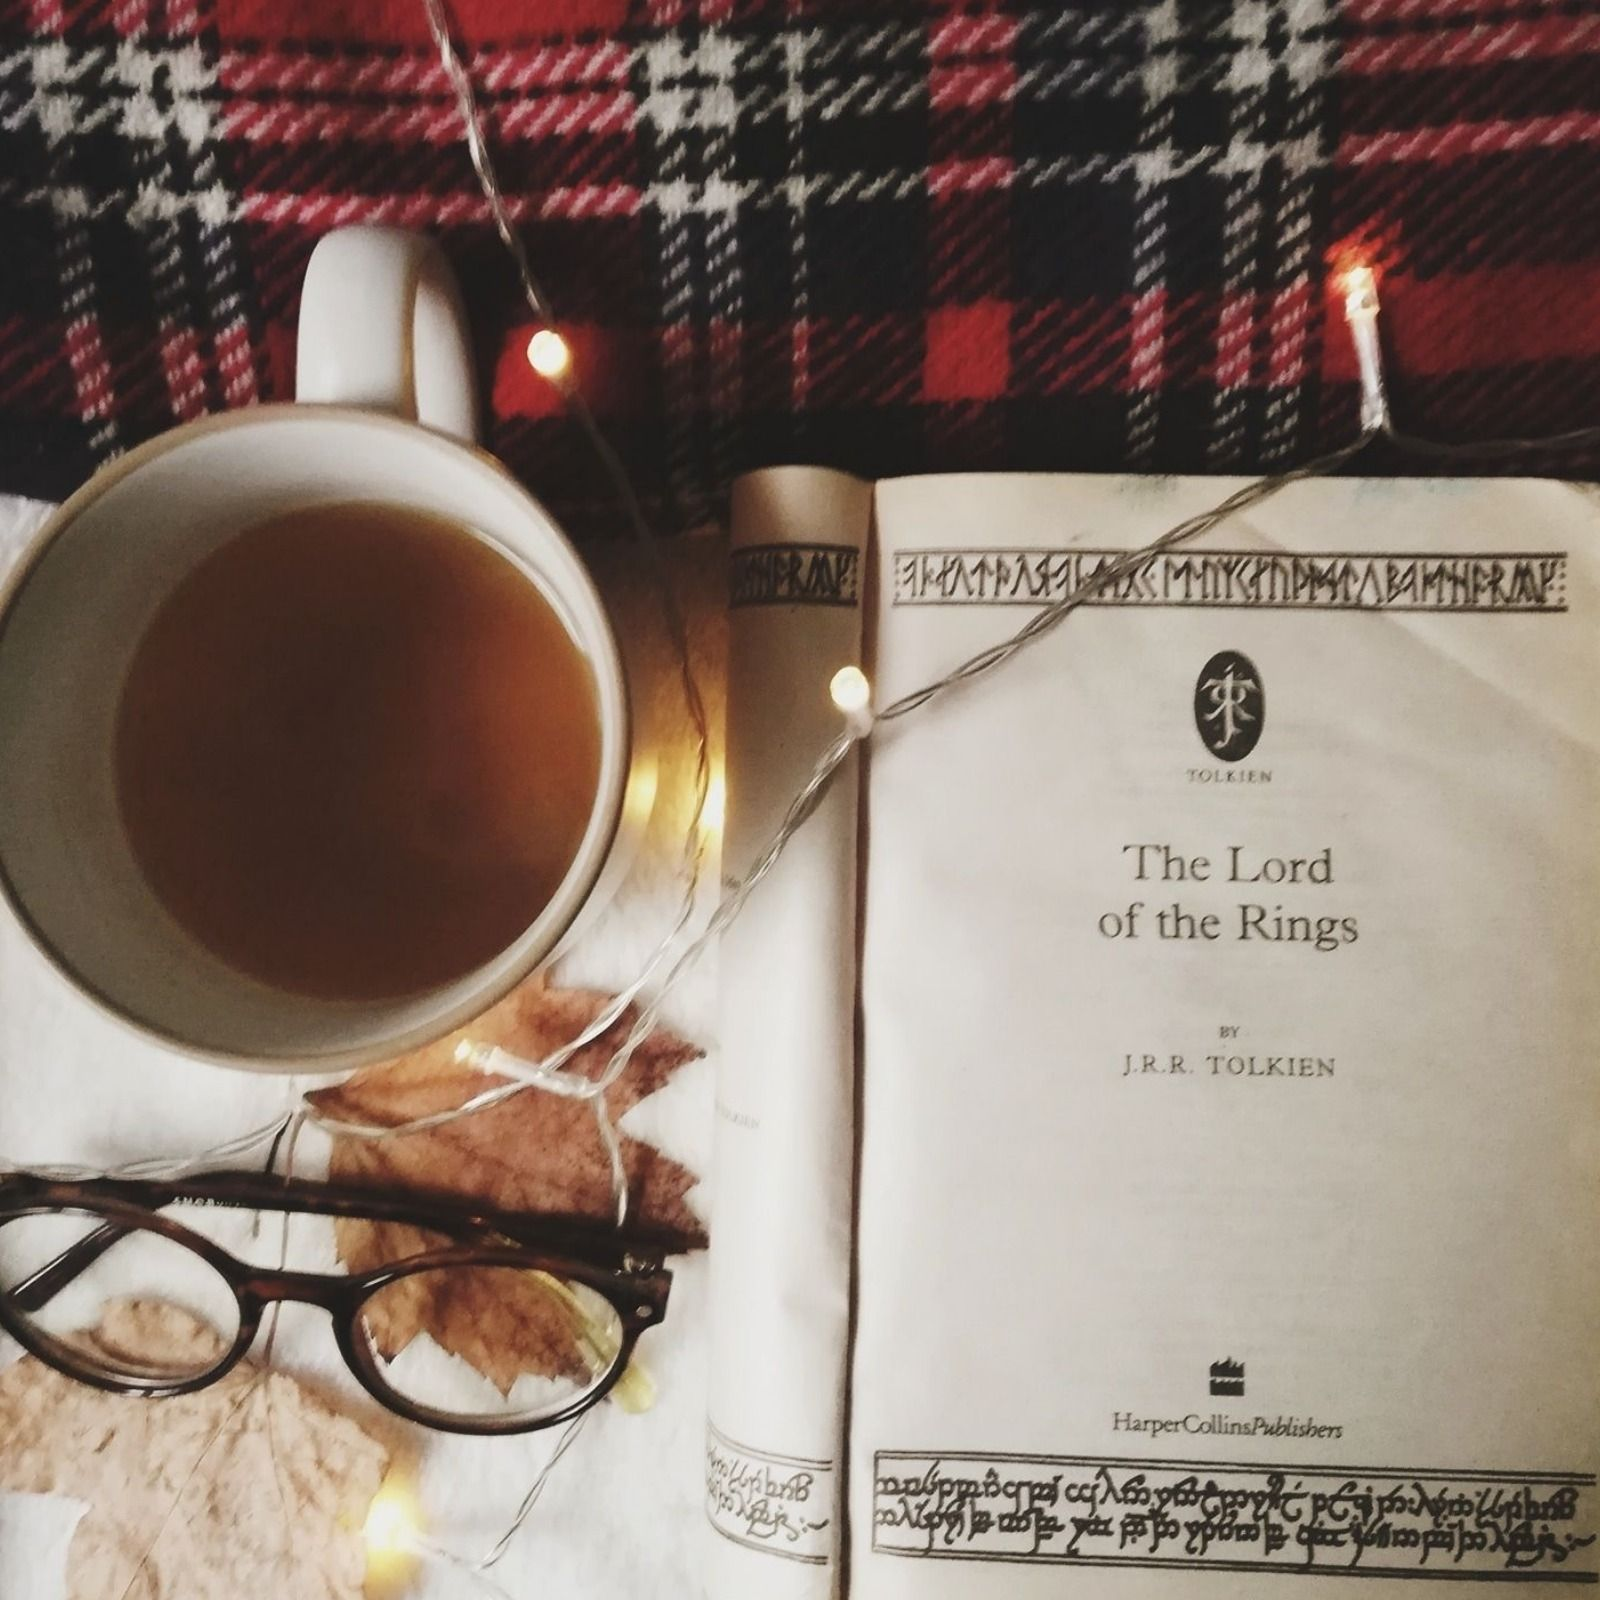 A copy of the Lord of the Rings open at the title page, surrounded by fairy lights, a mug of tea, autumn leaves, and a pair of glasses